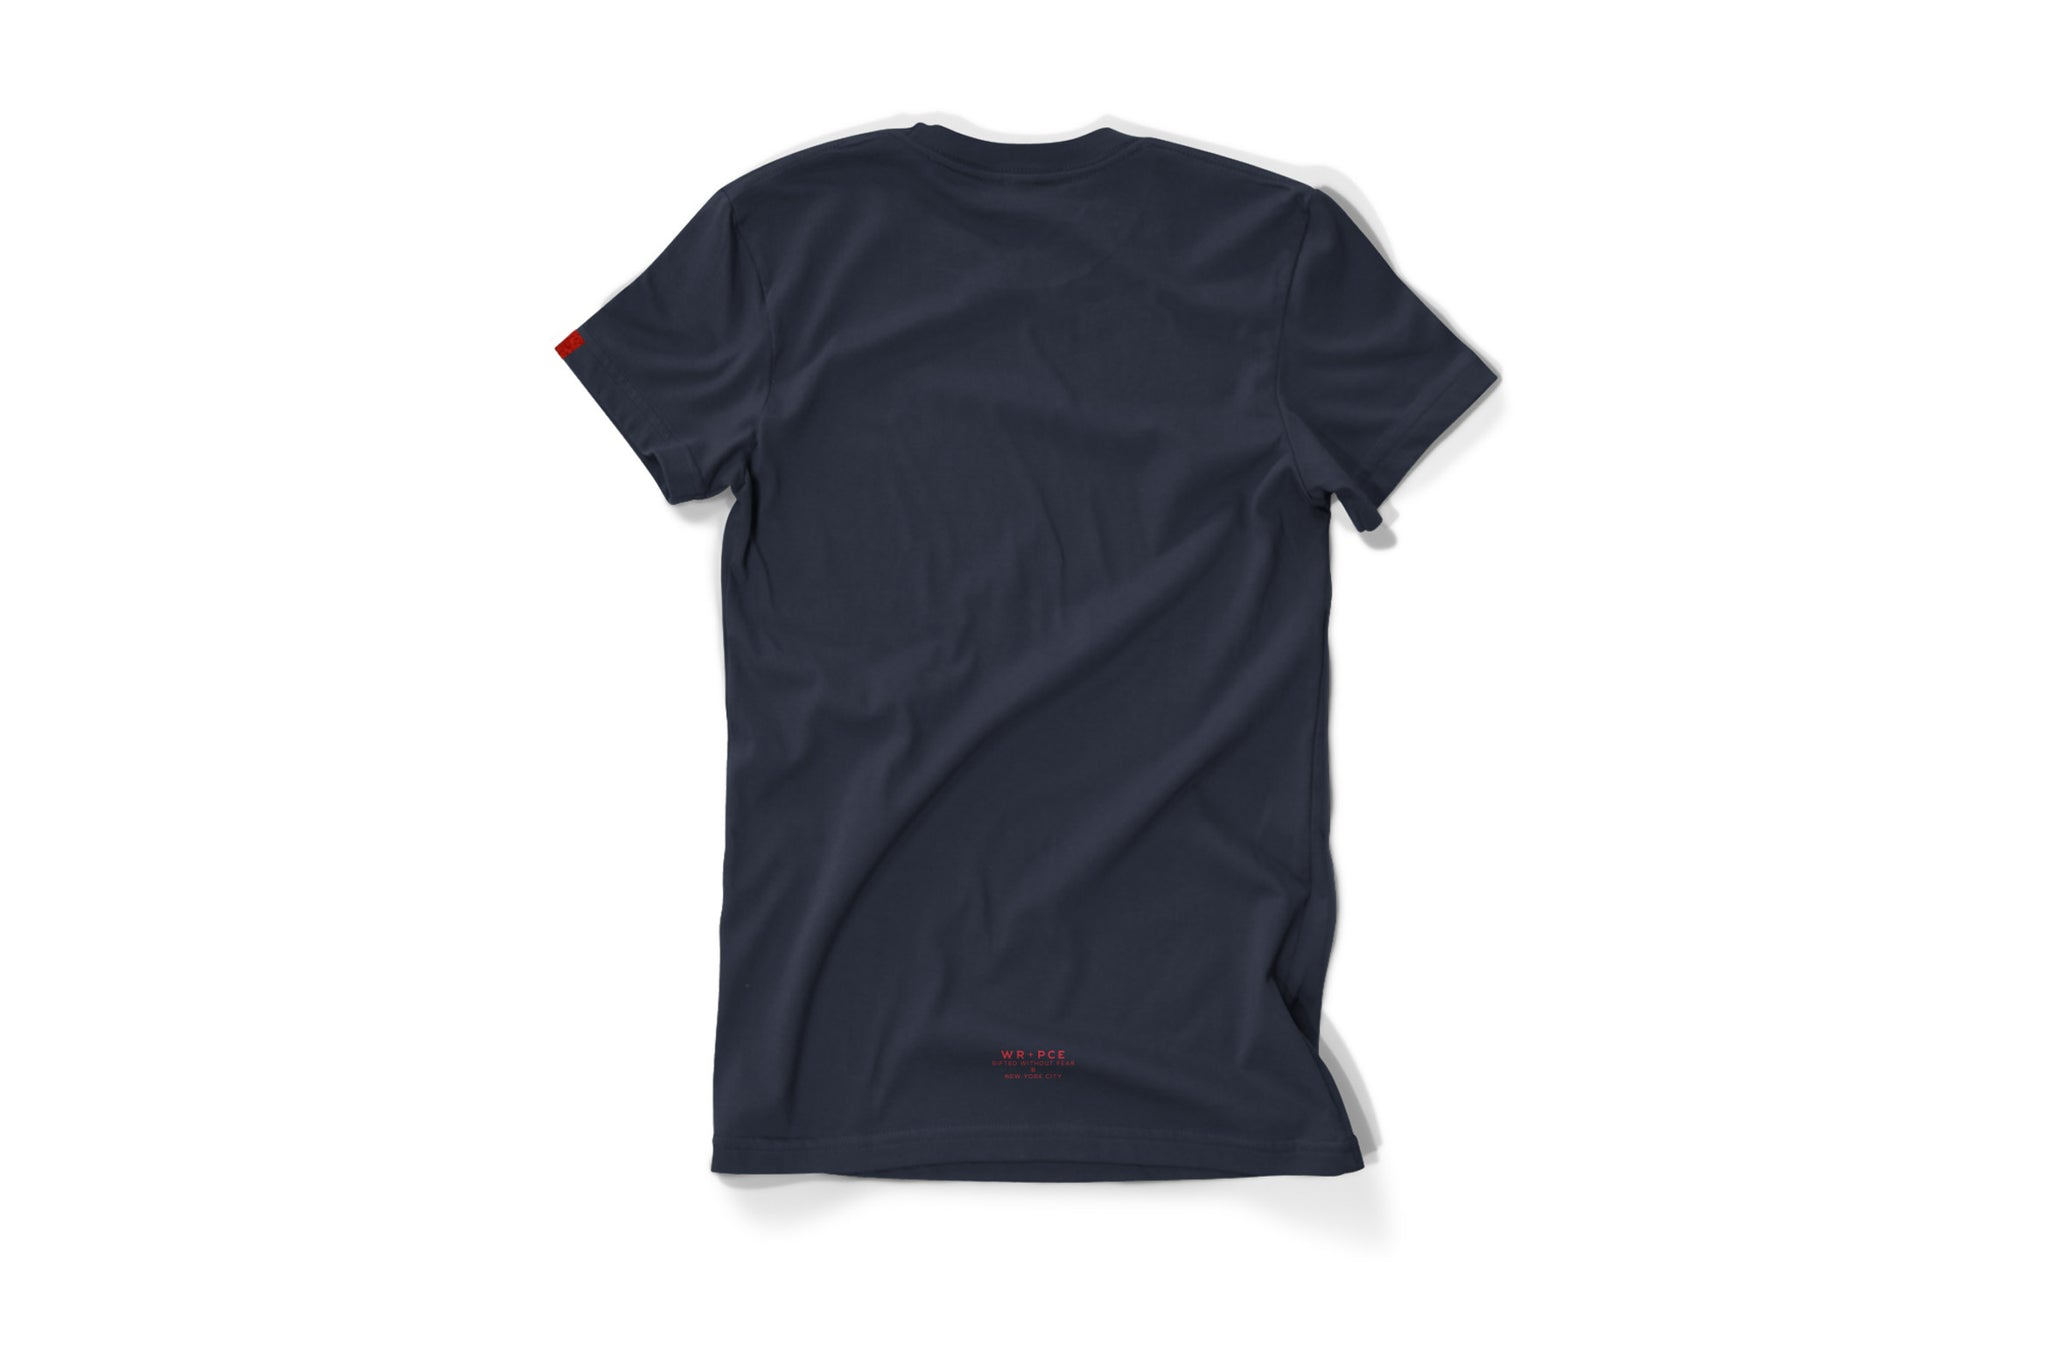 Warren Peace - Peacemaker Graphic T-Shirt in Navy Back - Designer Streetwear